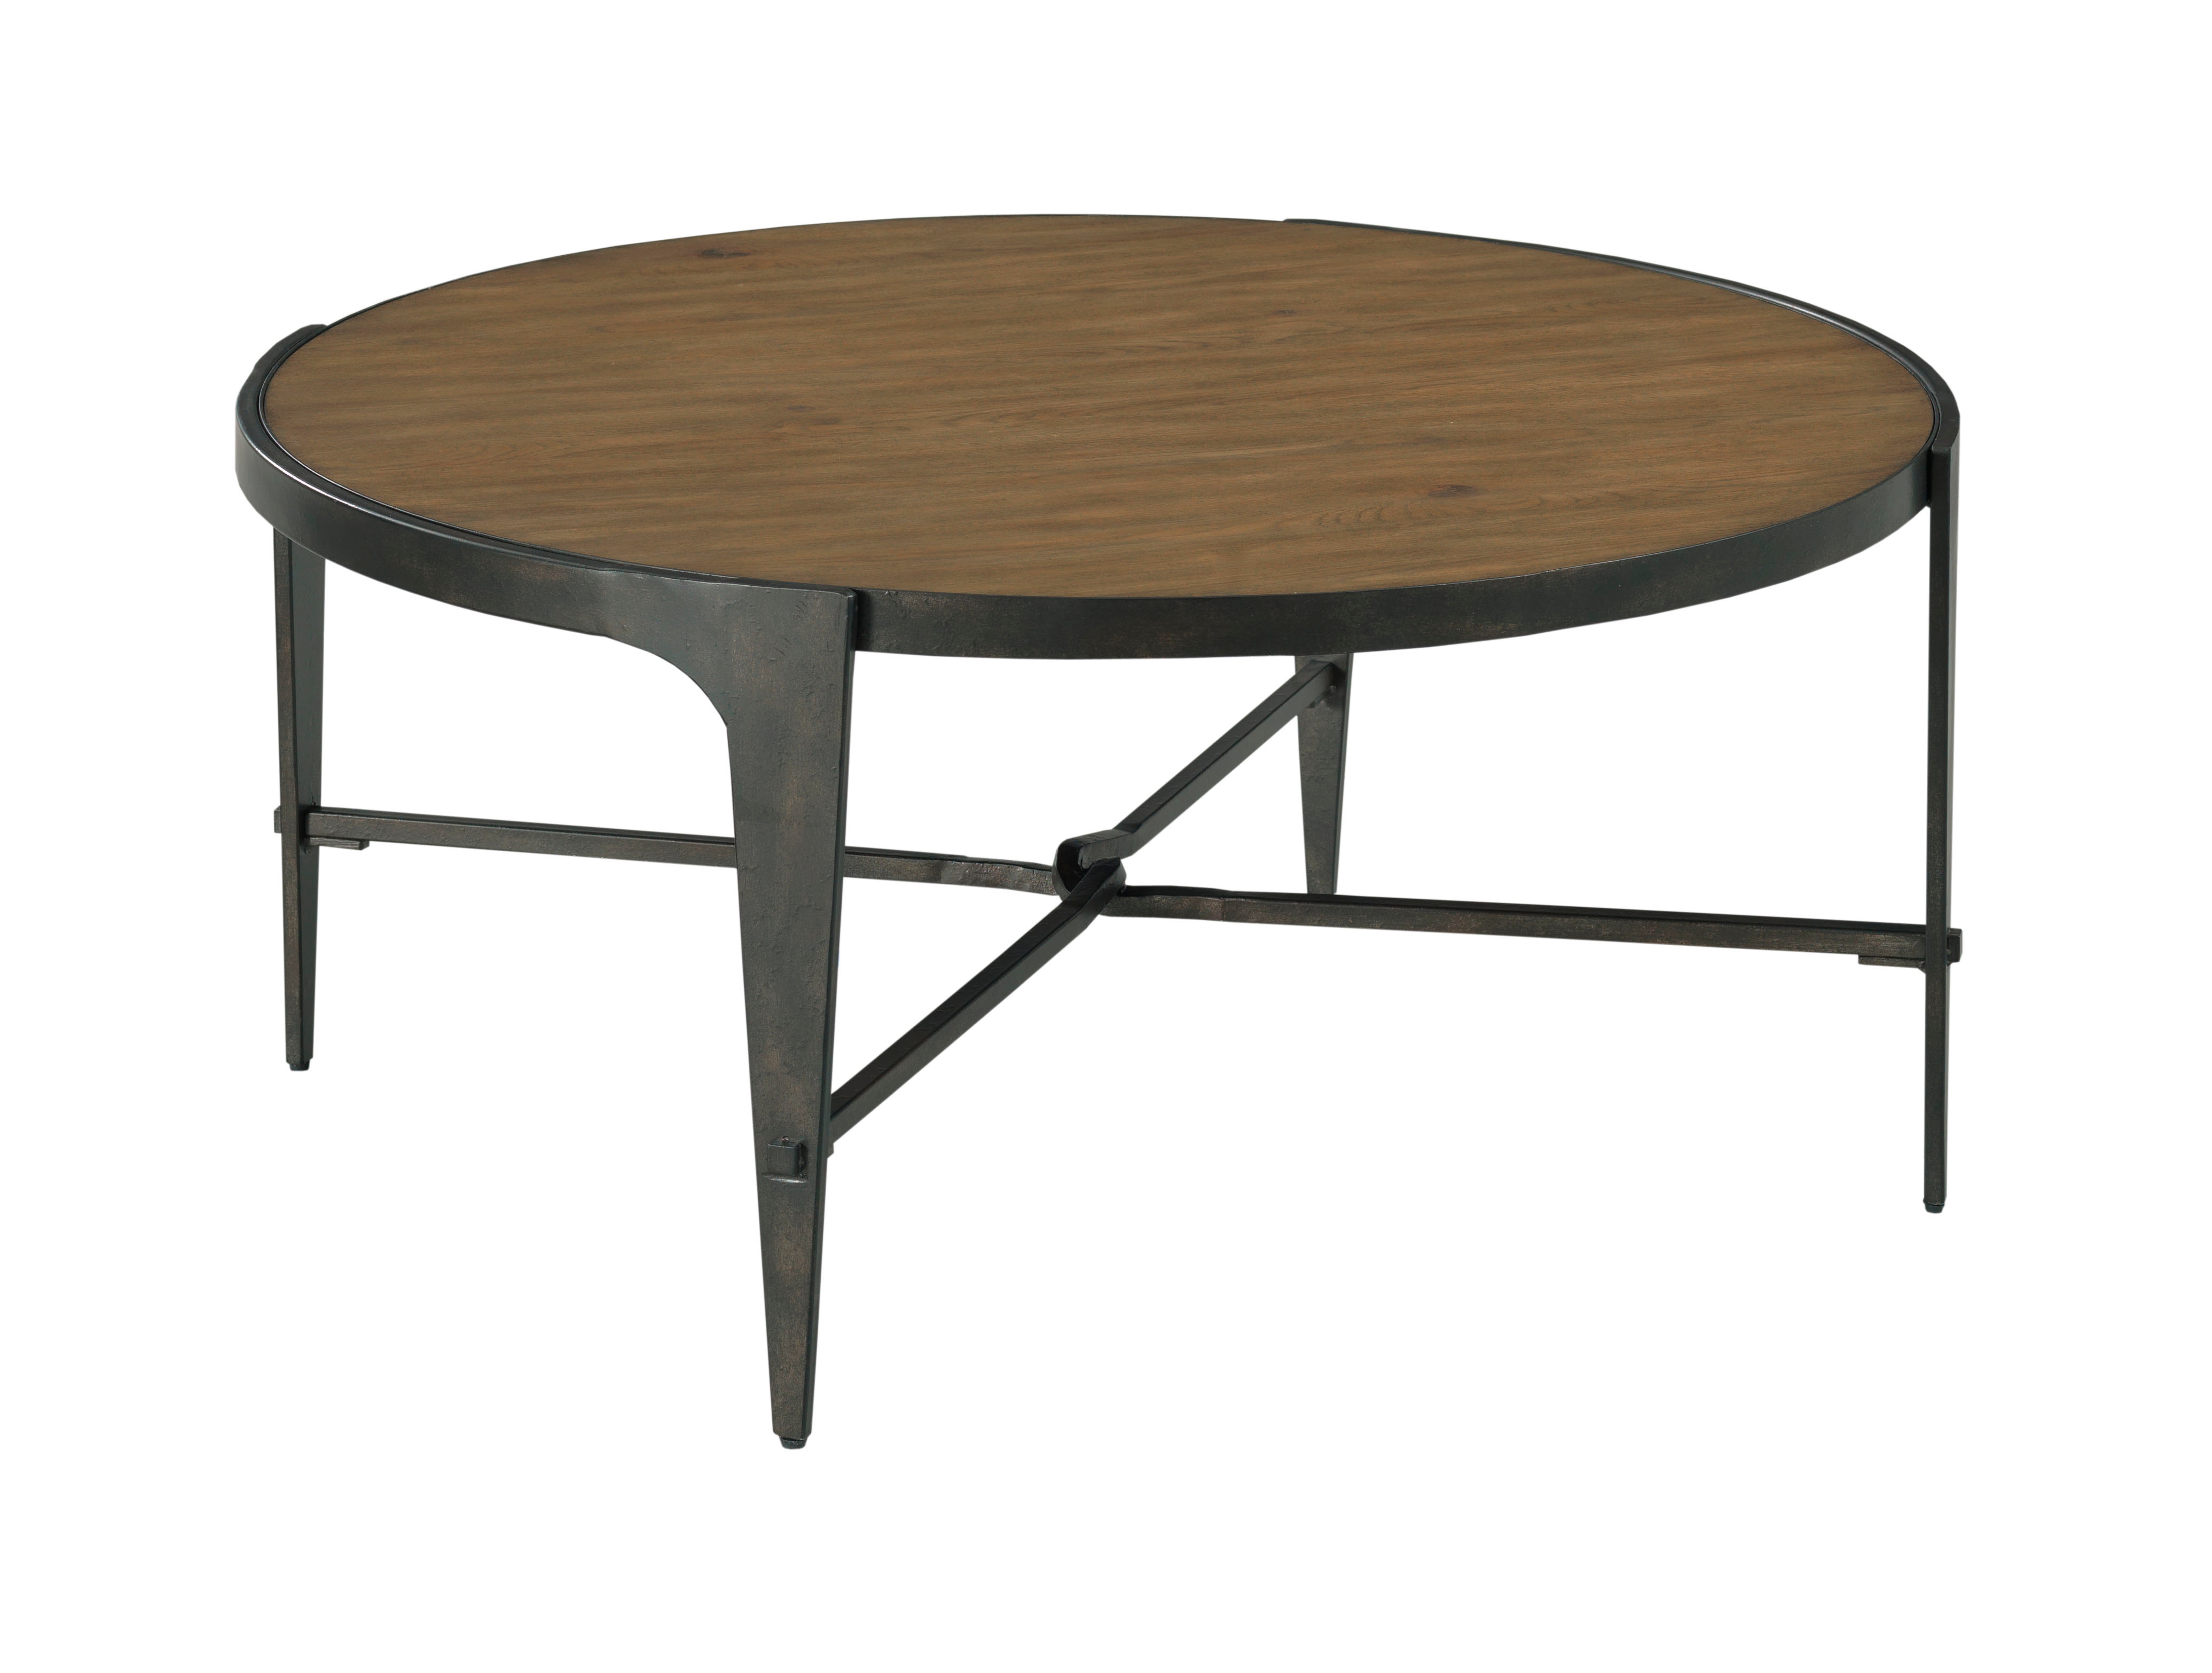 Olmsted Round Coffee Table by Hammary at Crowley Furniture & Mattress